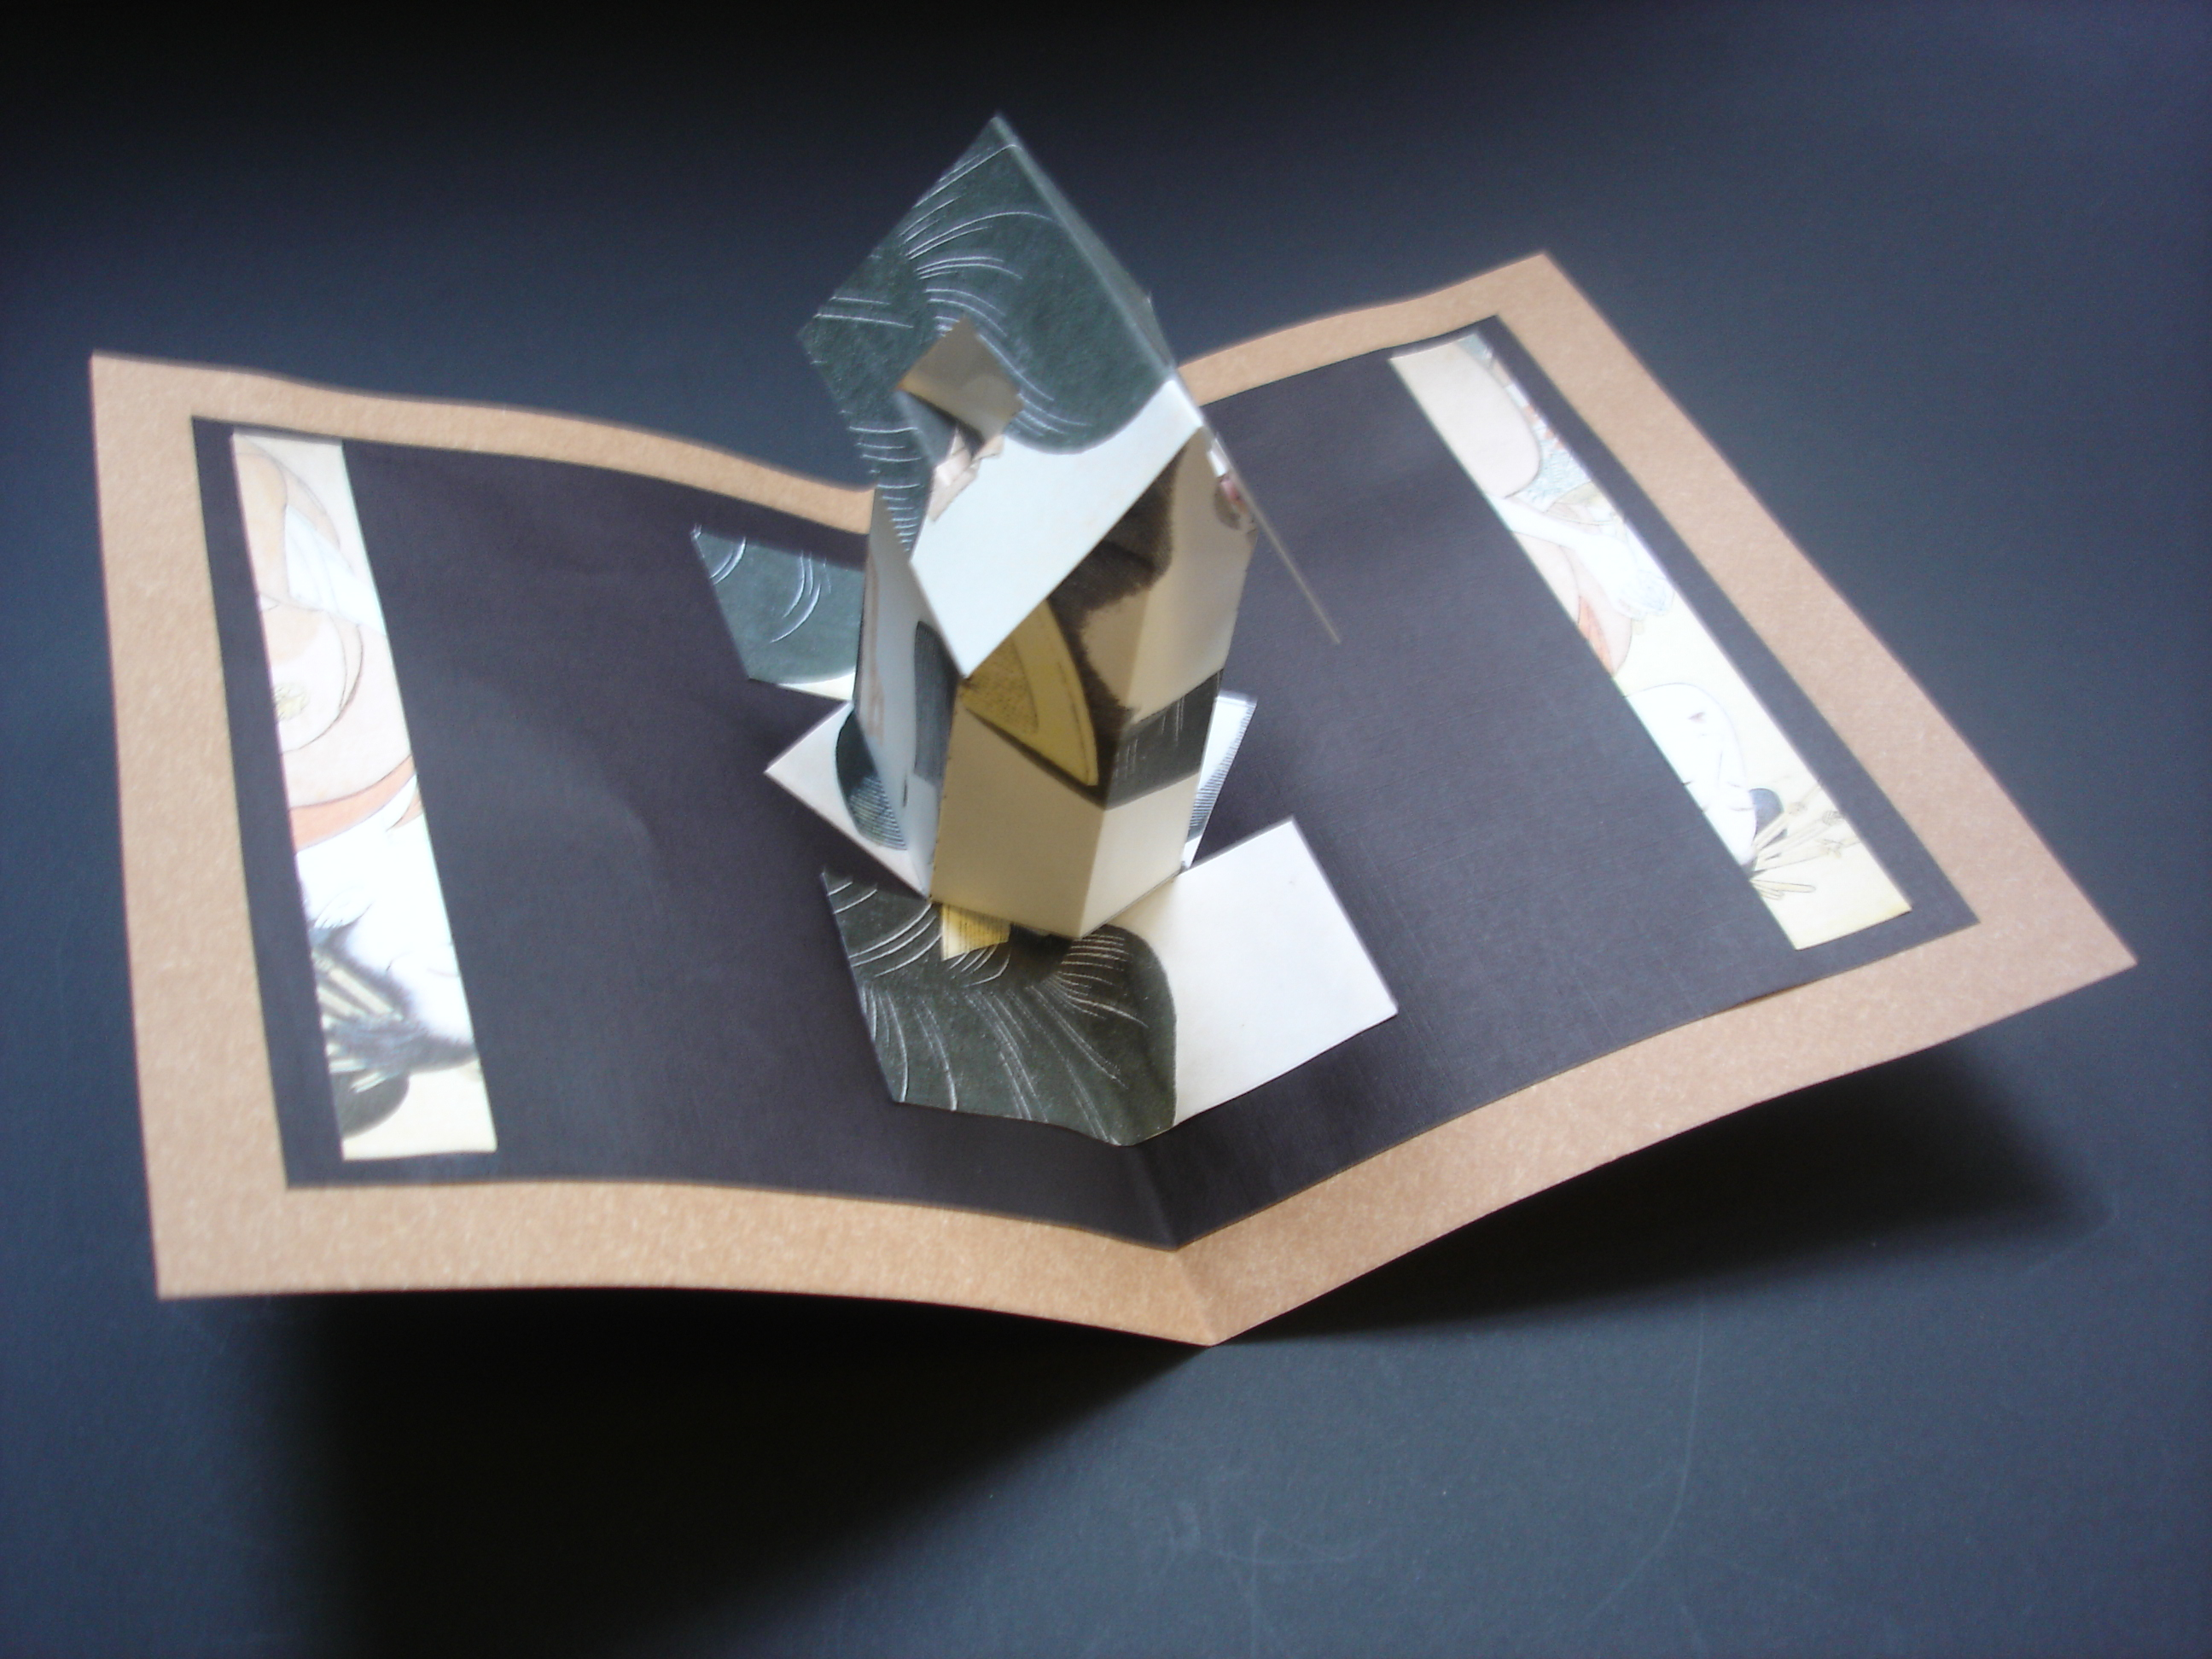 the book art project pioneering work in developing literacy